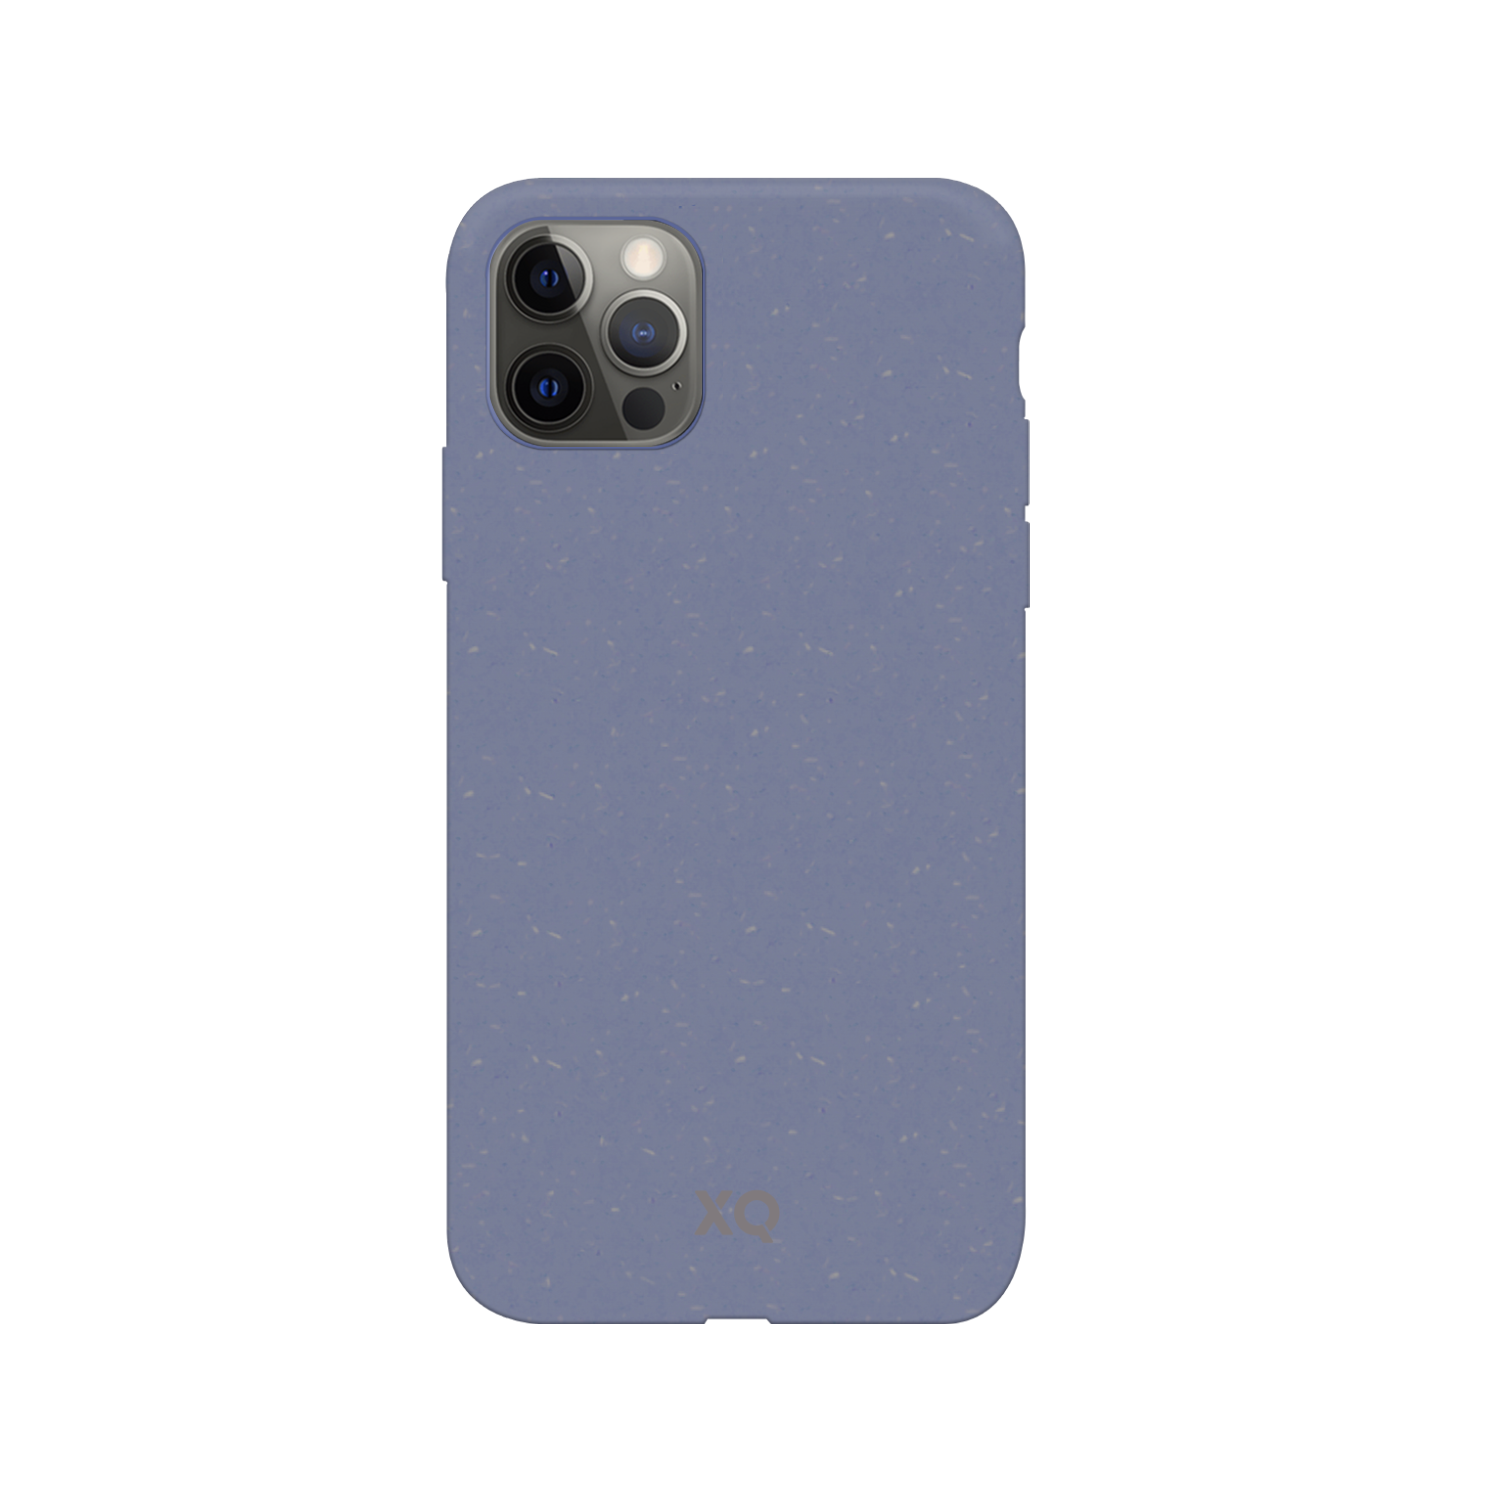 XQISIT Eco Flex Anti Bac for iPhone 12 / 12 Pro lavender blue